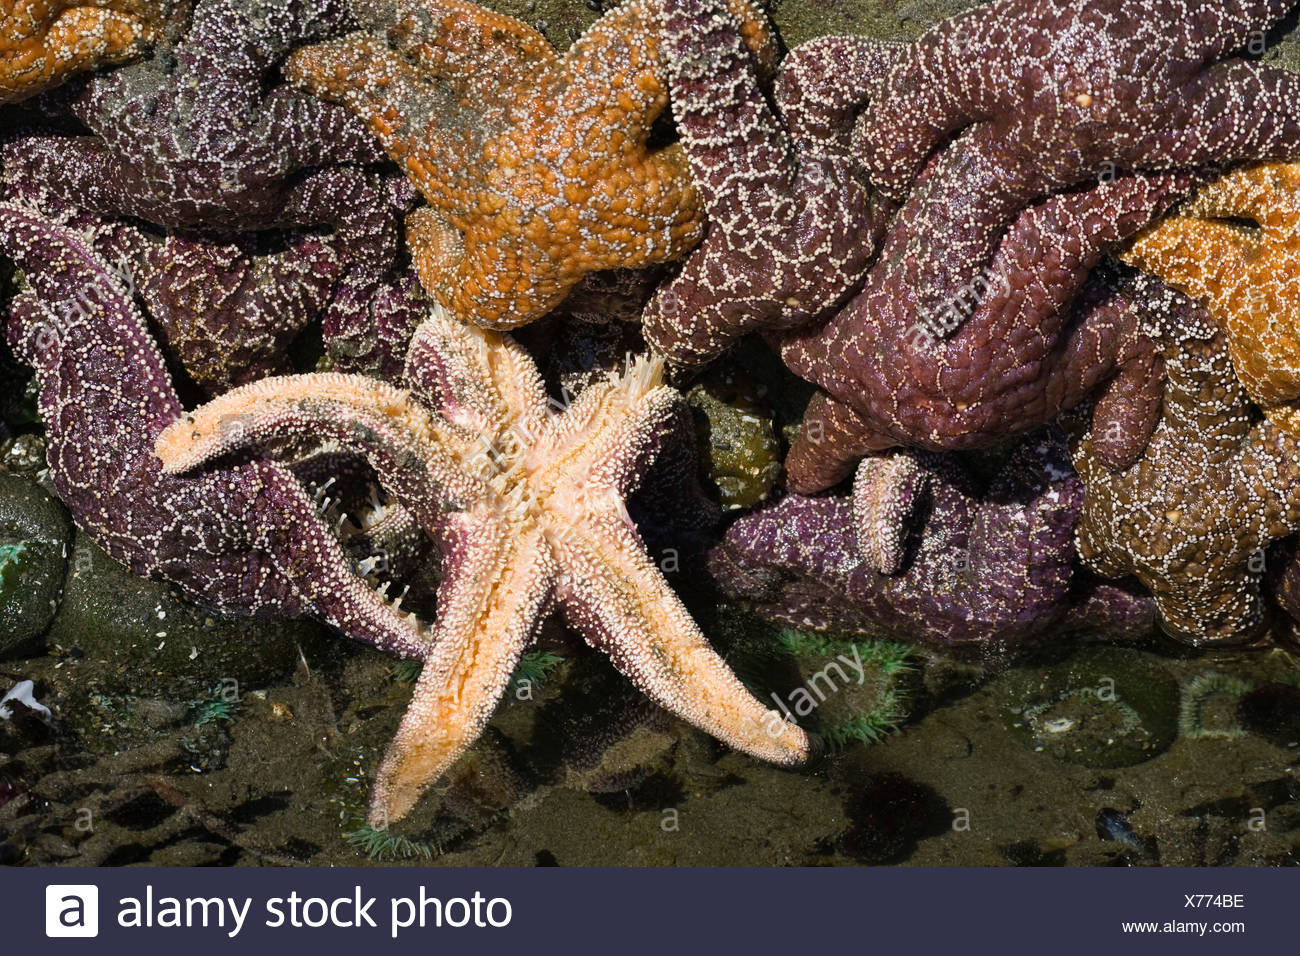 Tide pool with Sea Stars, Ochre Sea Stars (Piaster ochraceus), Pacific Coast, Olympic National Park, Washington, USA Stock Photo